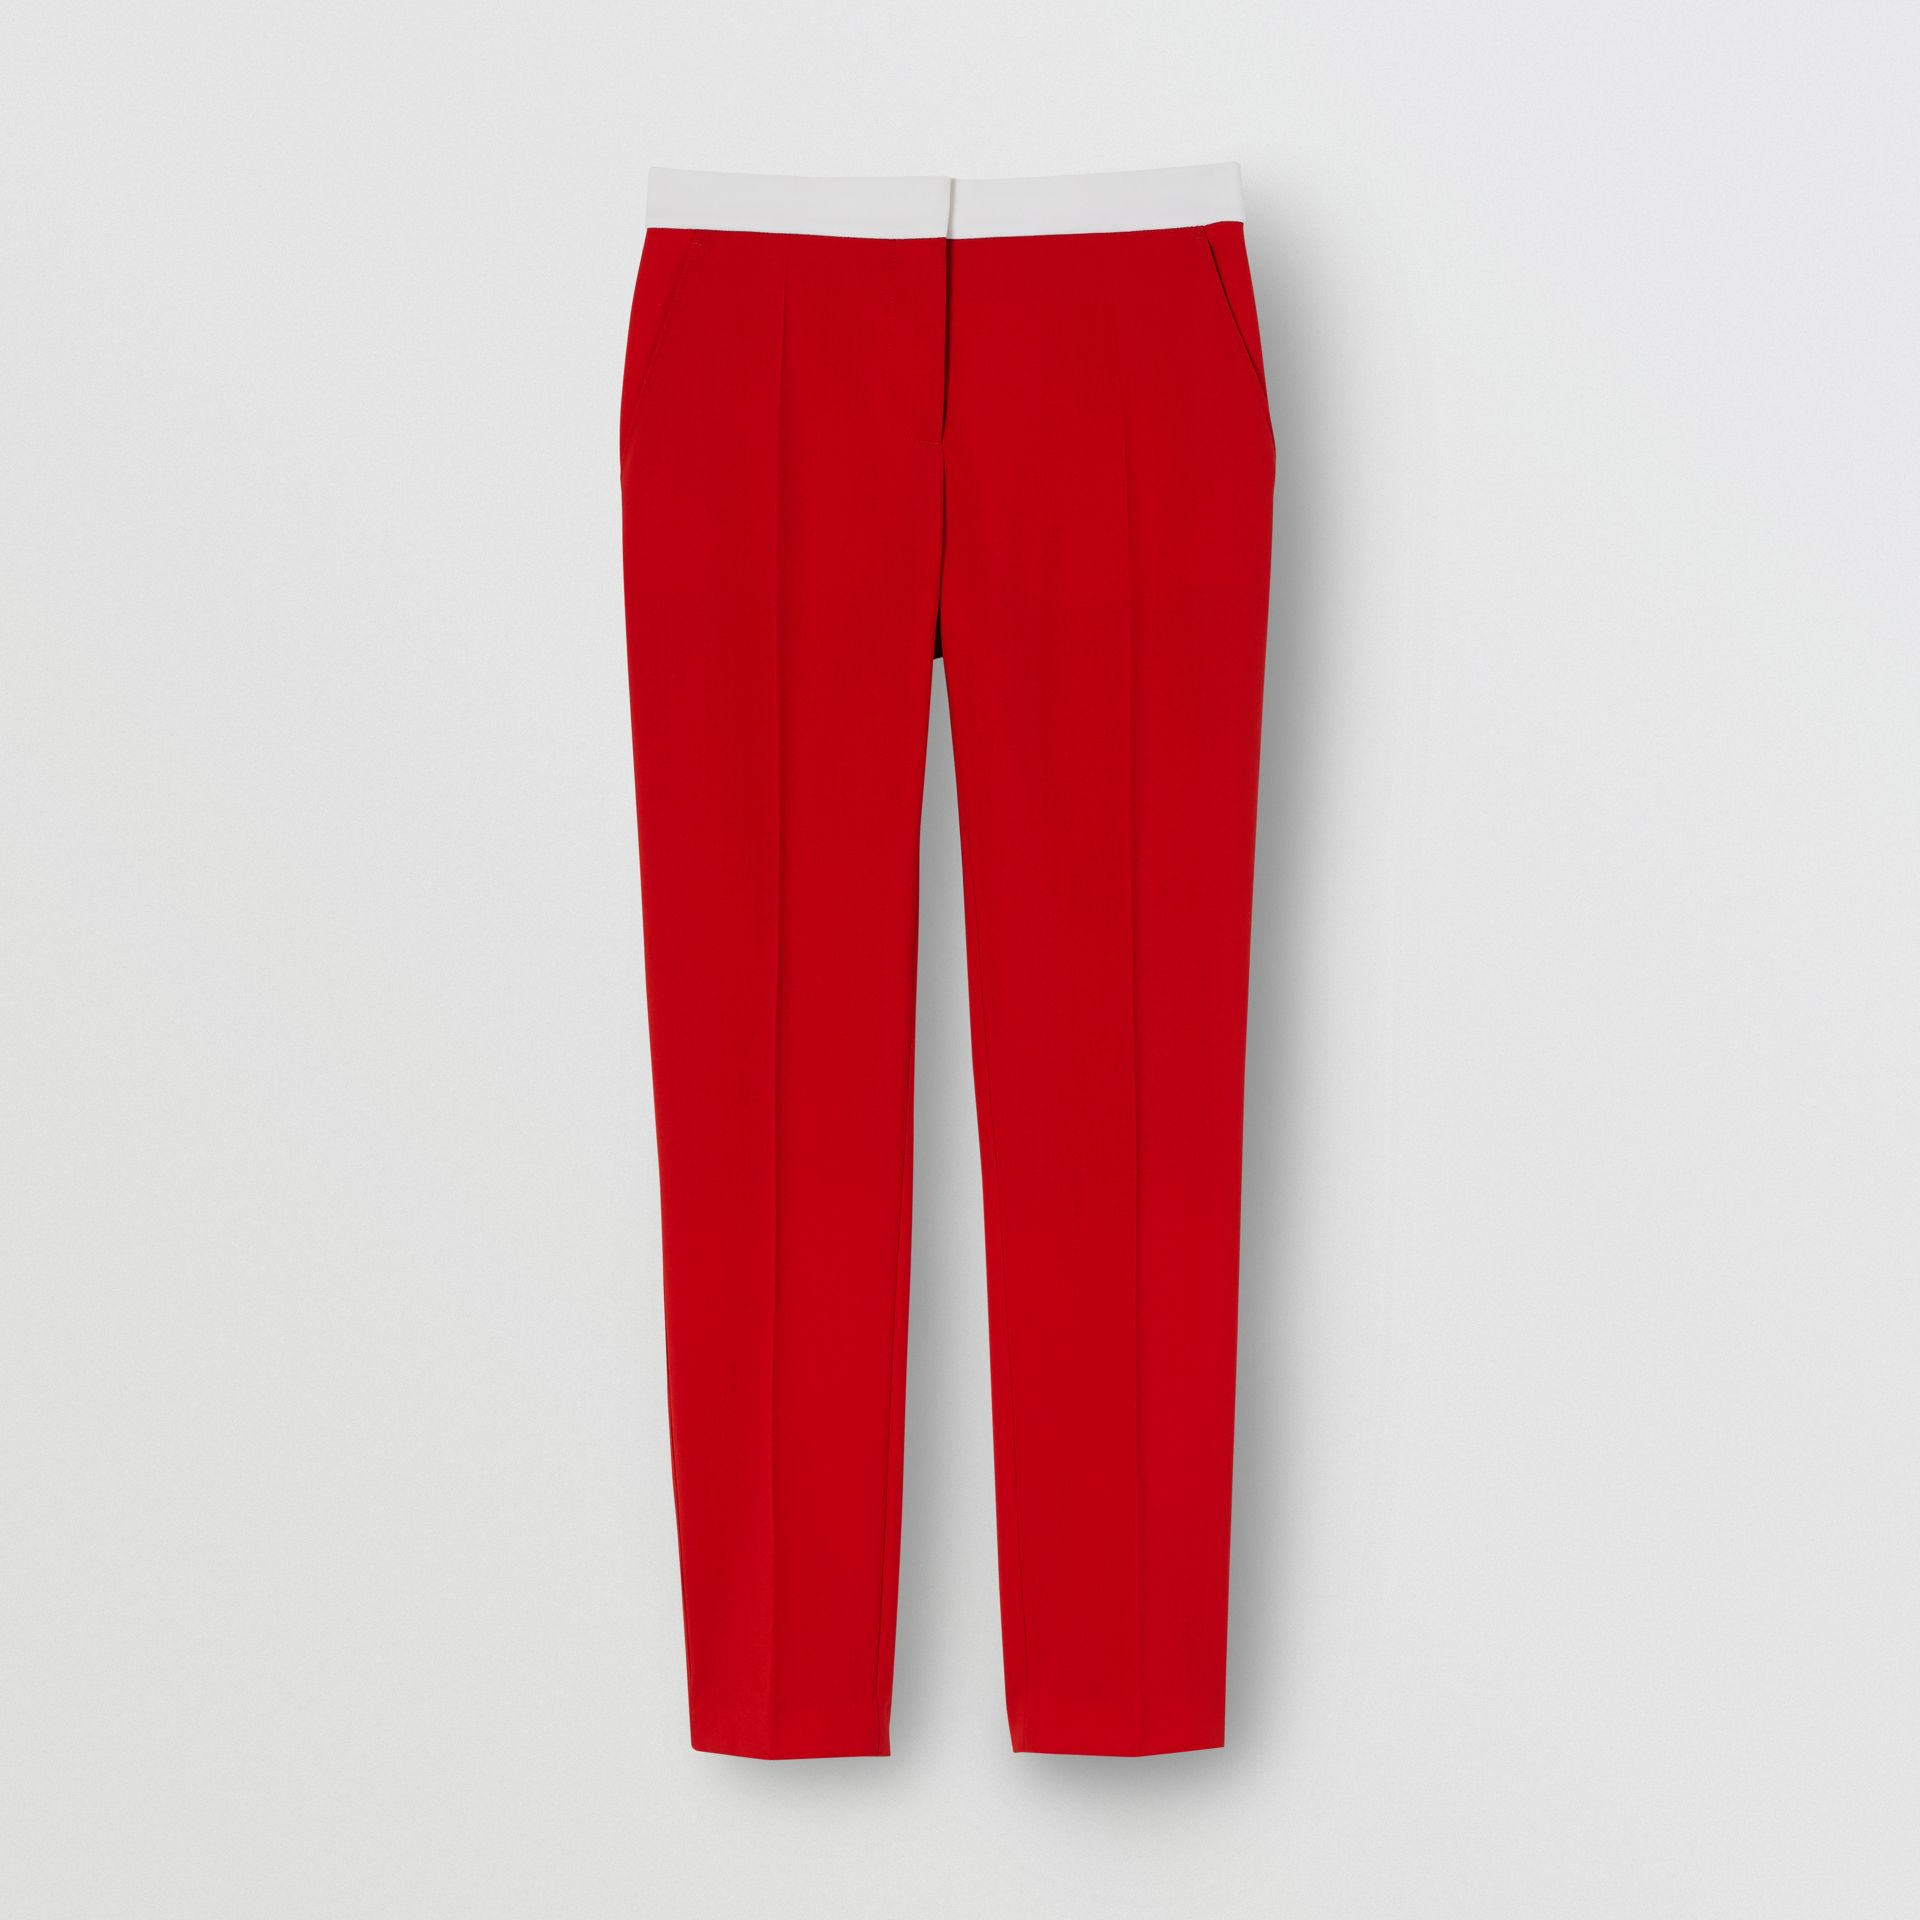 Two-tone Wool Tailored Trousers in Bright Red - Women | Burberry Hong Kong S.A.R - gallery image 3